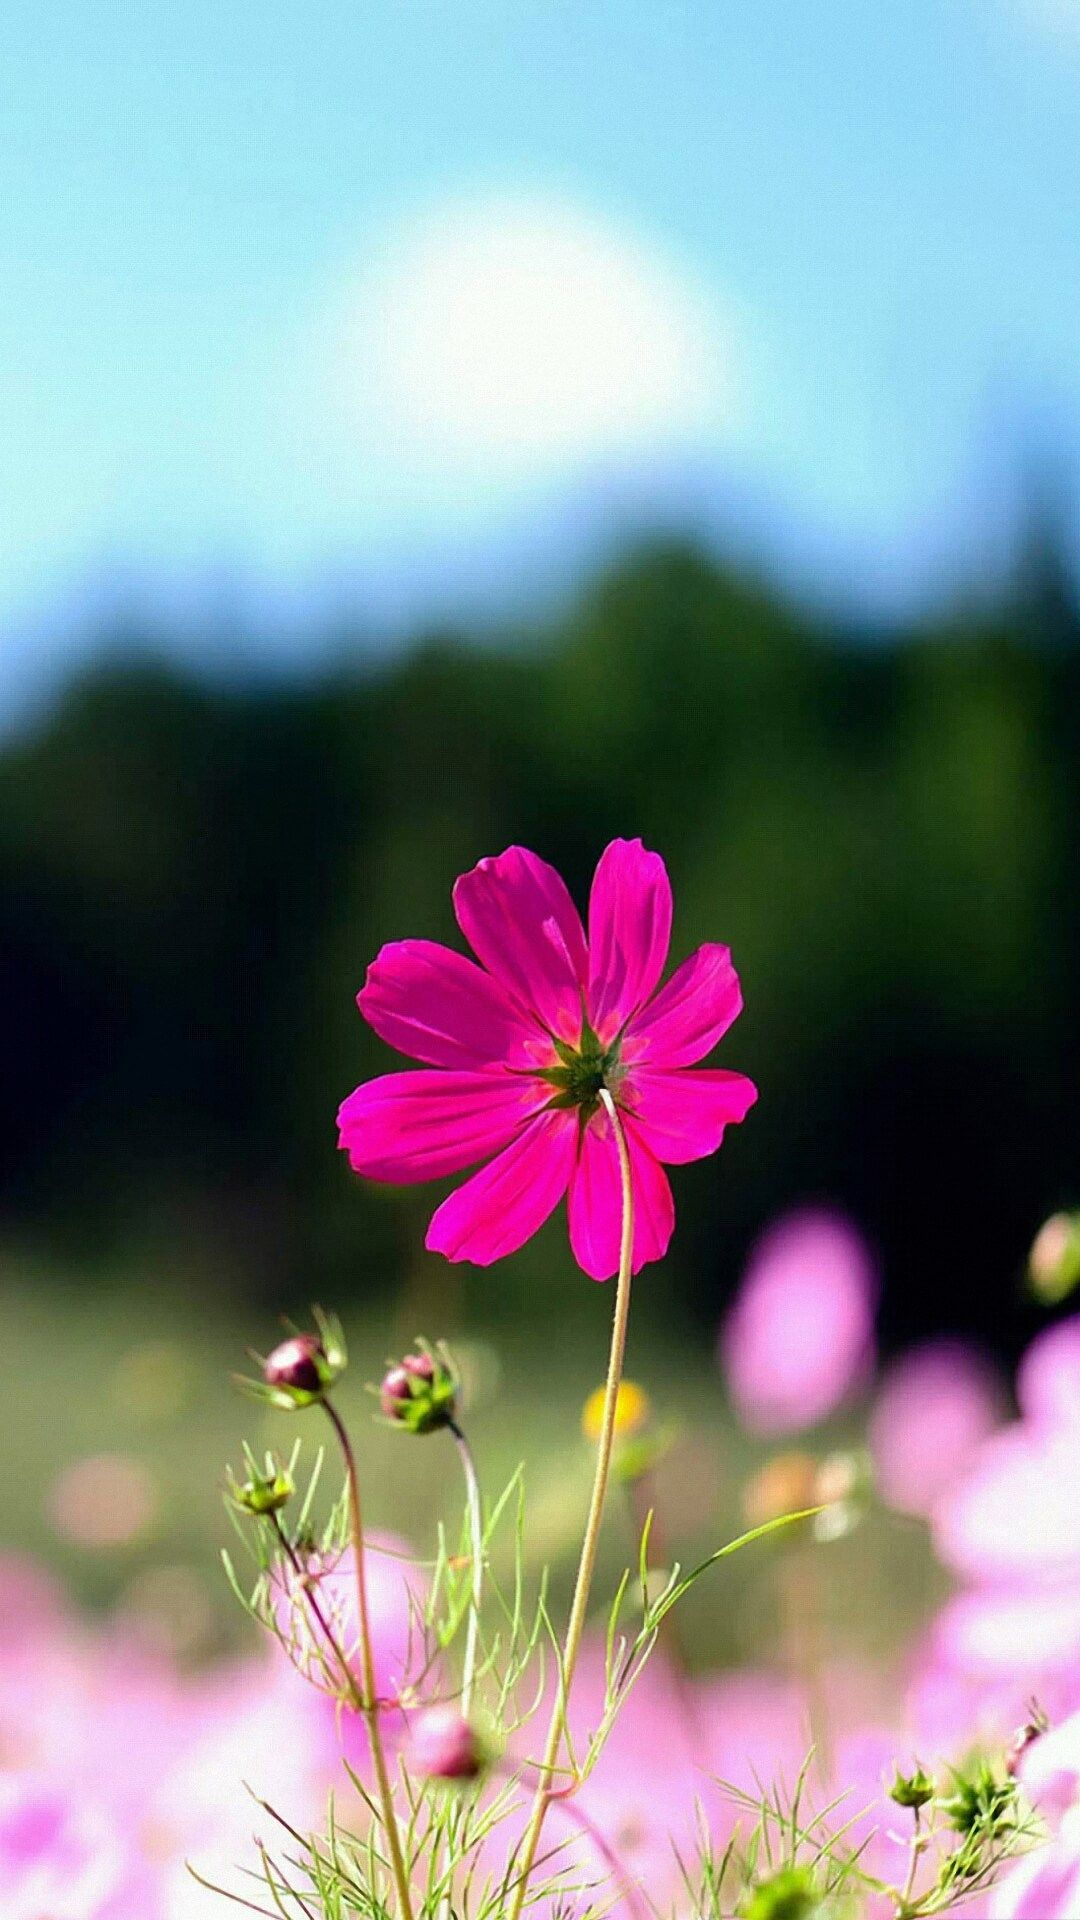 Flower Wallpapers Hd Resolution For Iphone Wallpaper On Hupages Com If You Like It Dont Forget Save It O Flower Iphone Wallpaper Cosmos Flowers Flowers Nature